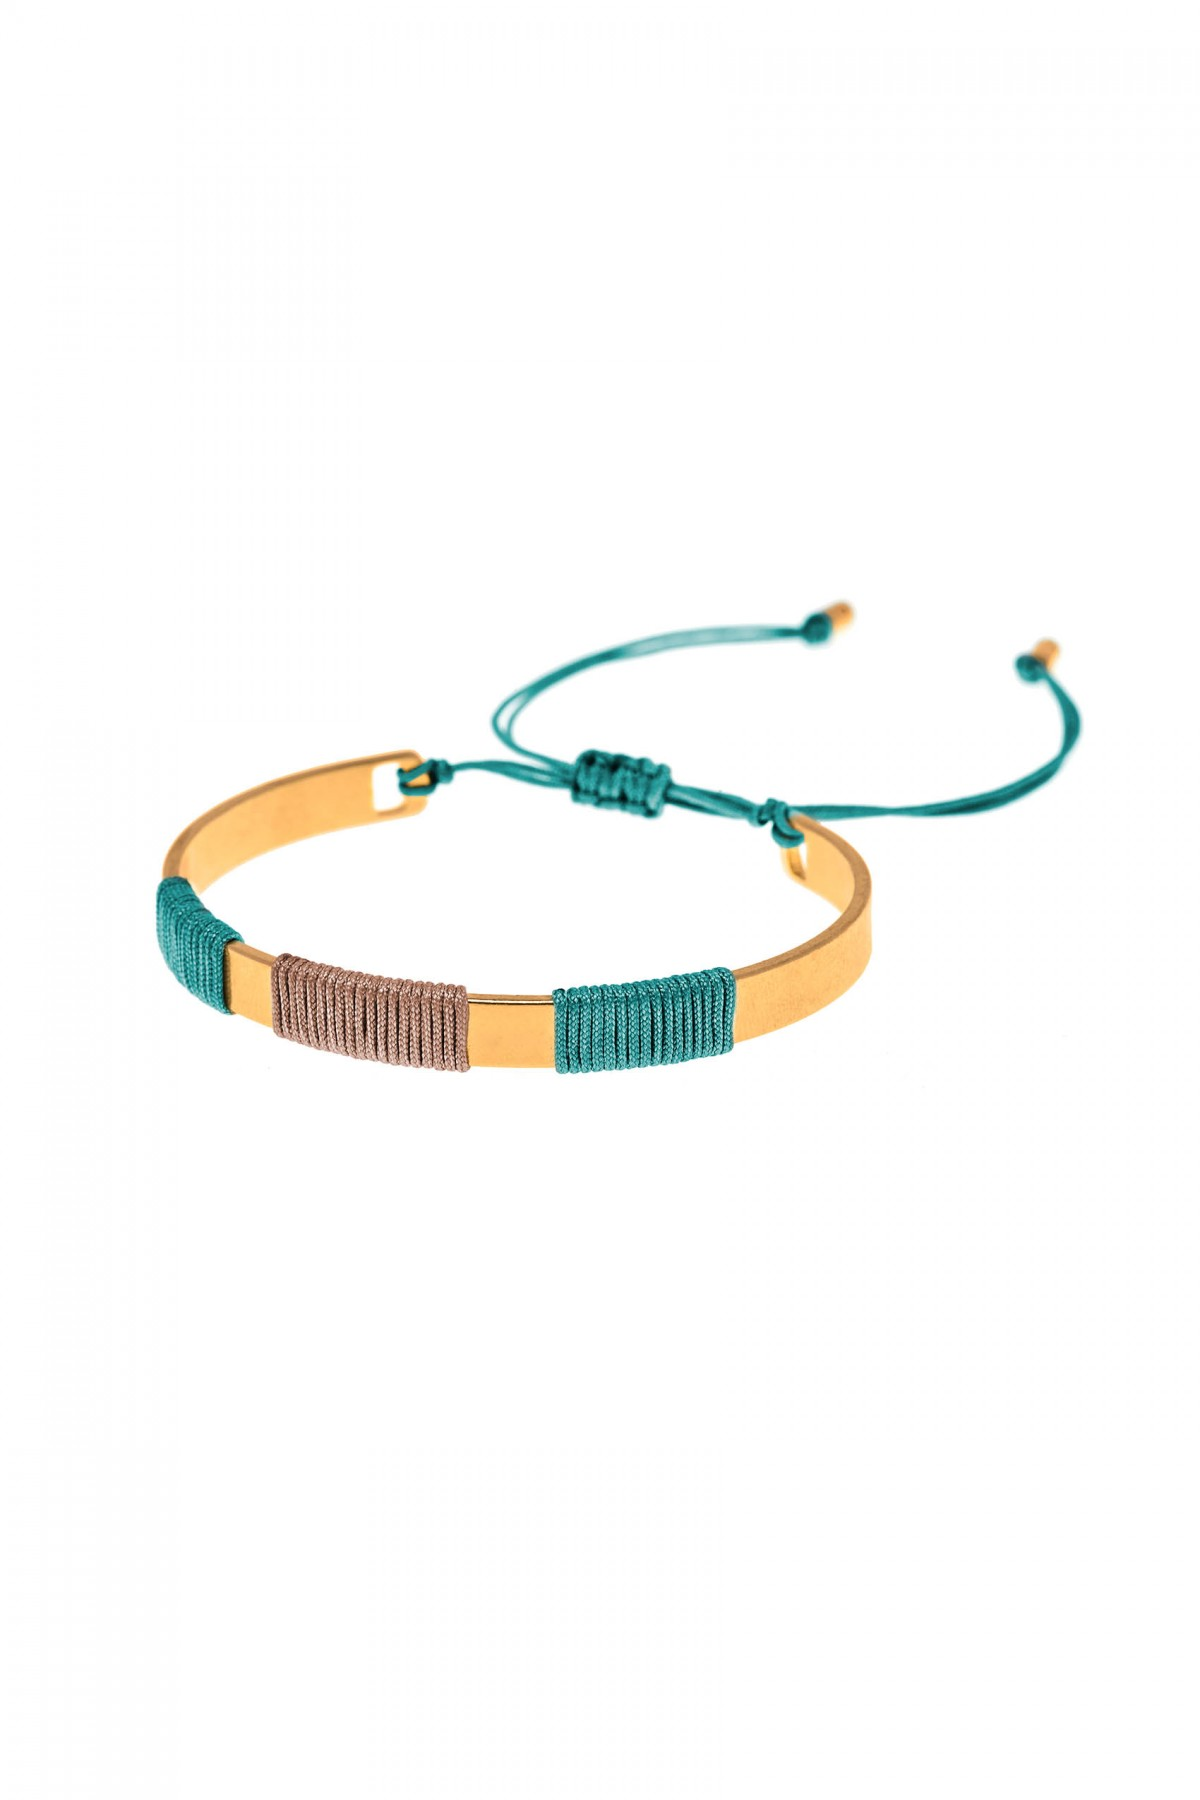 Bracelet Golden Green Boho